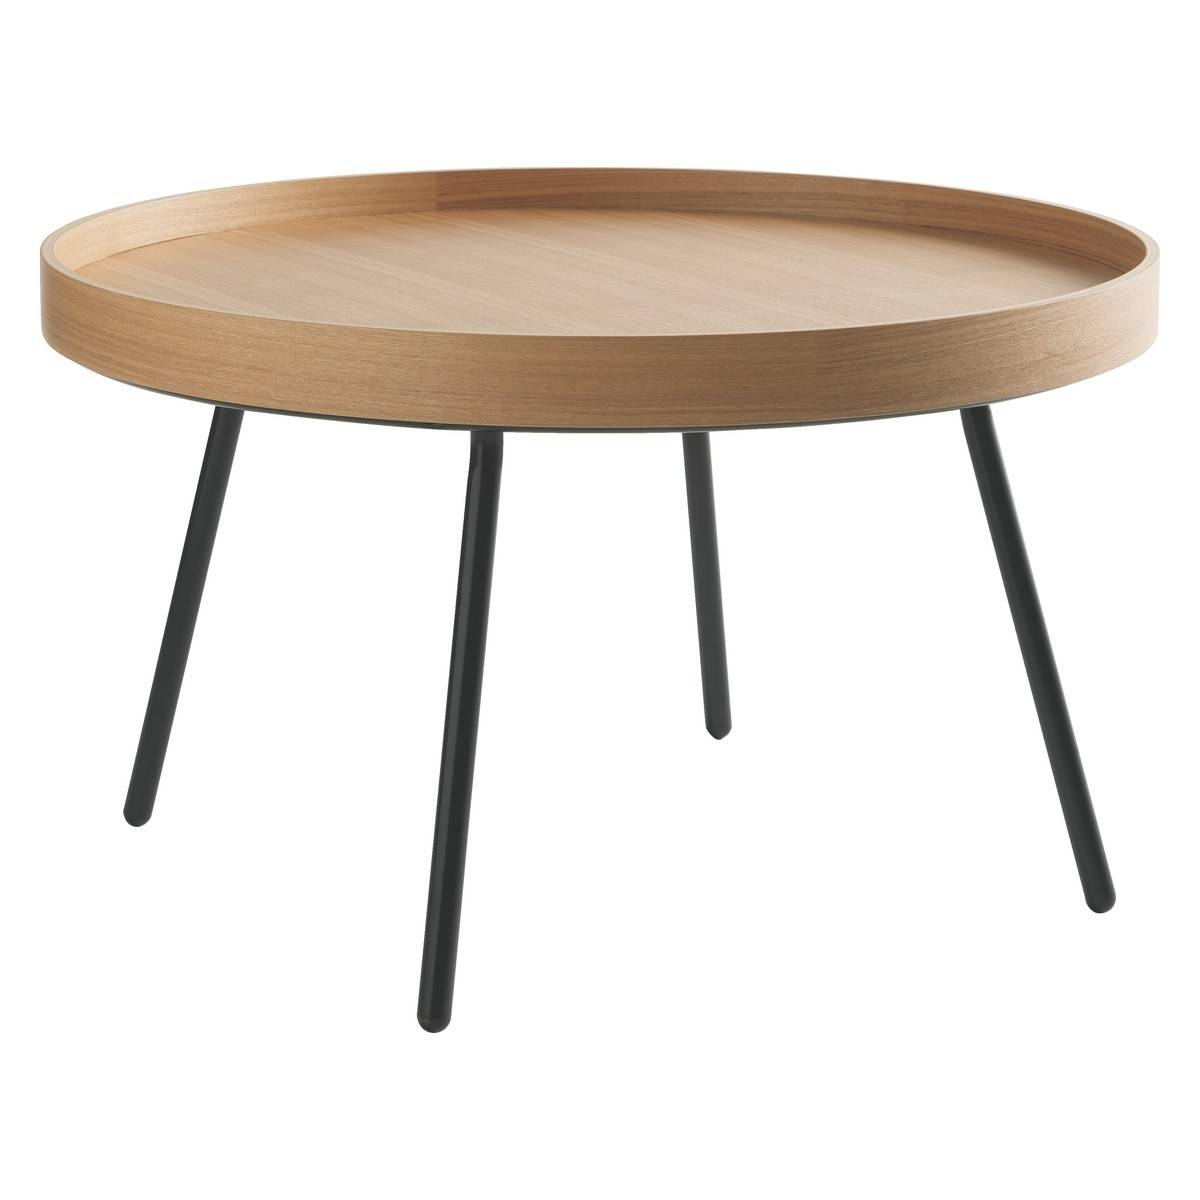 Round Oak Cocktail Table | Coffee Tables Decoration with regard to Round Tray Coffee Tables (Image 24 of 30)